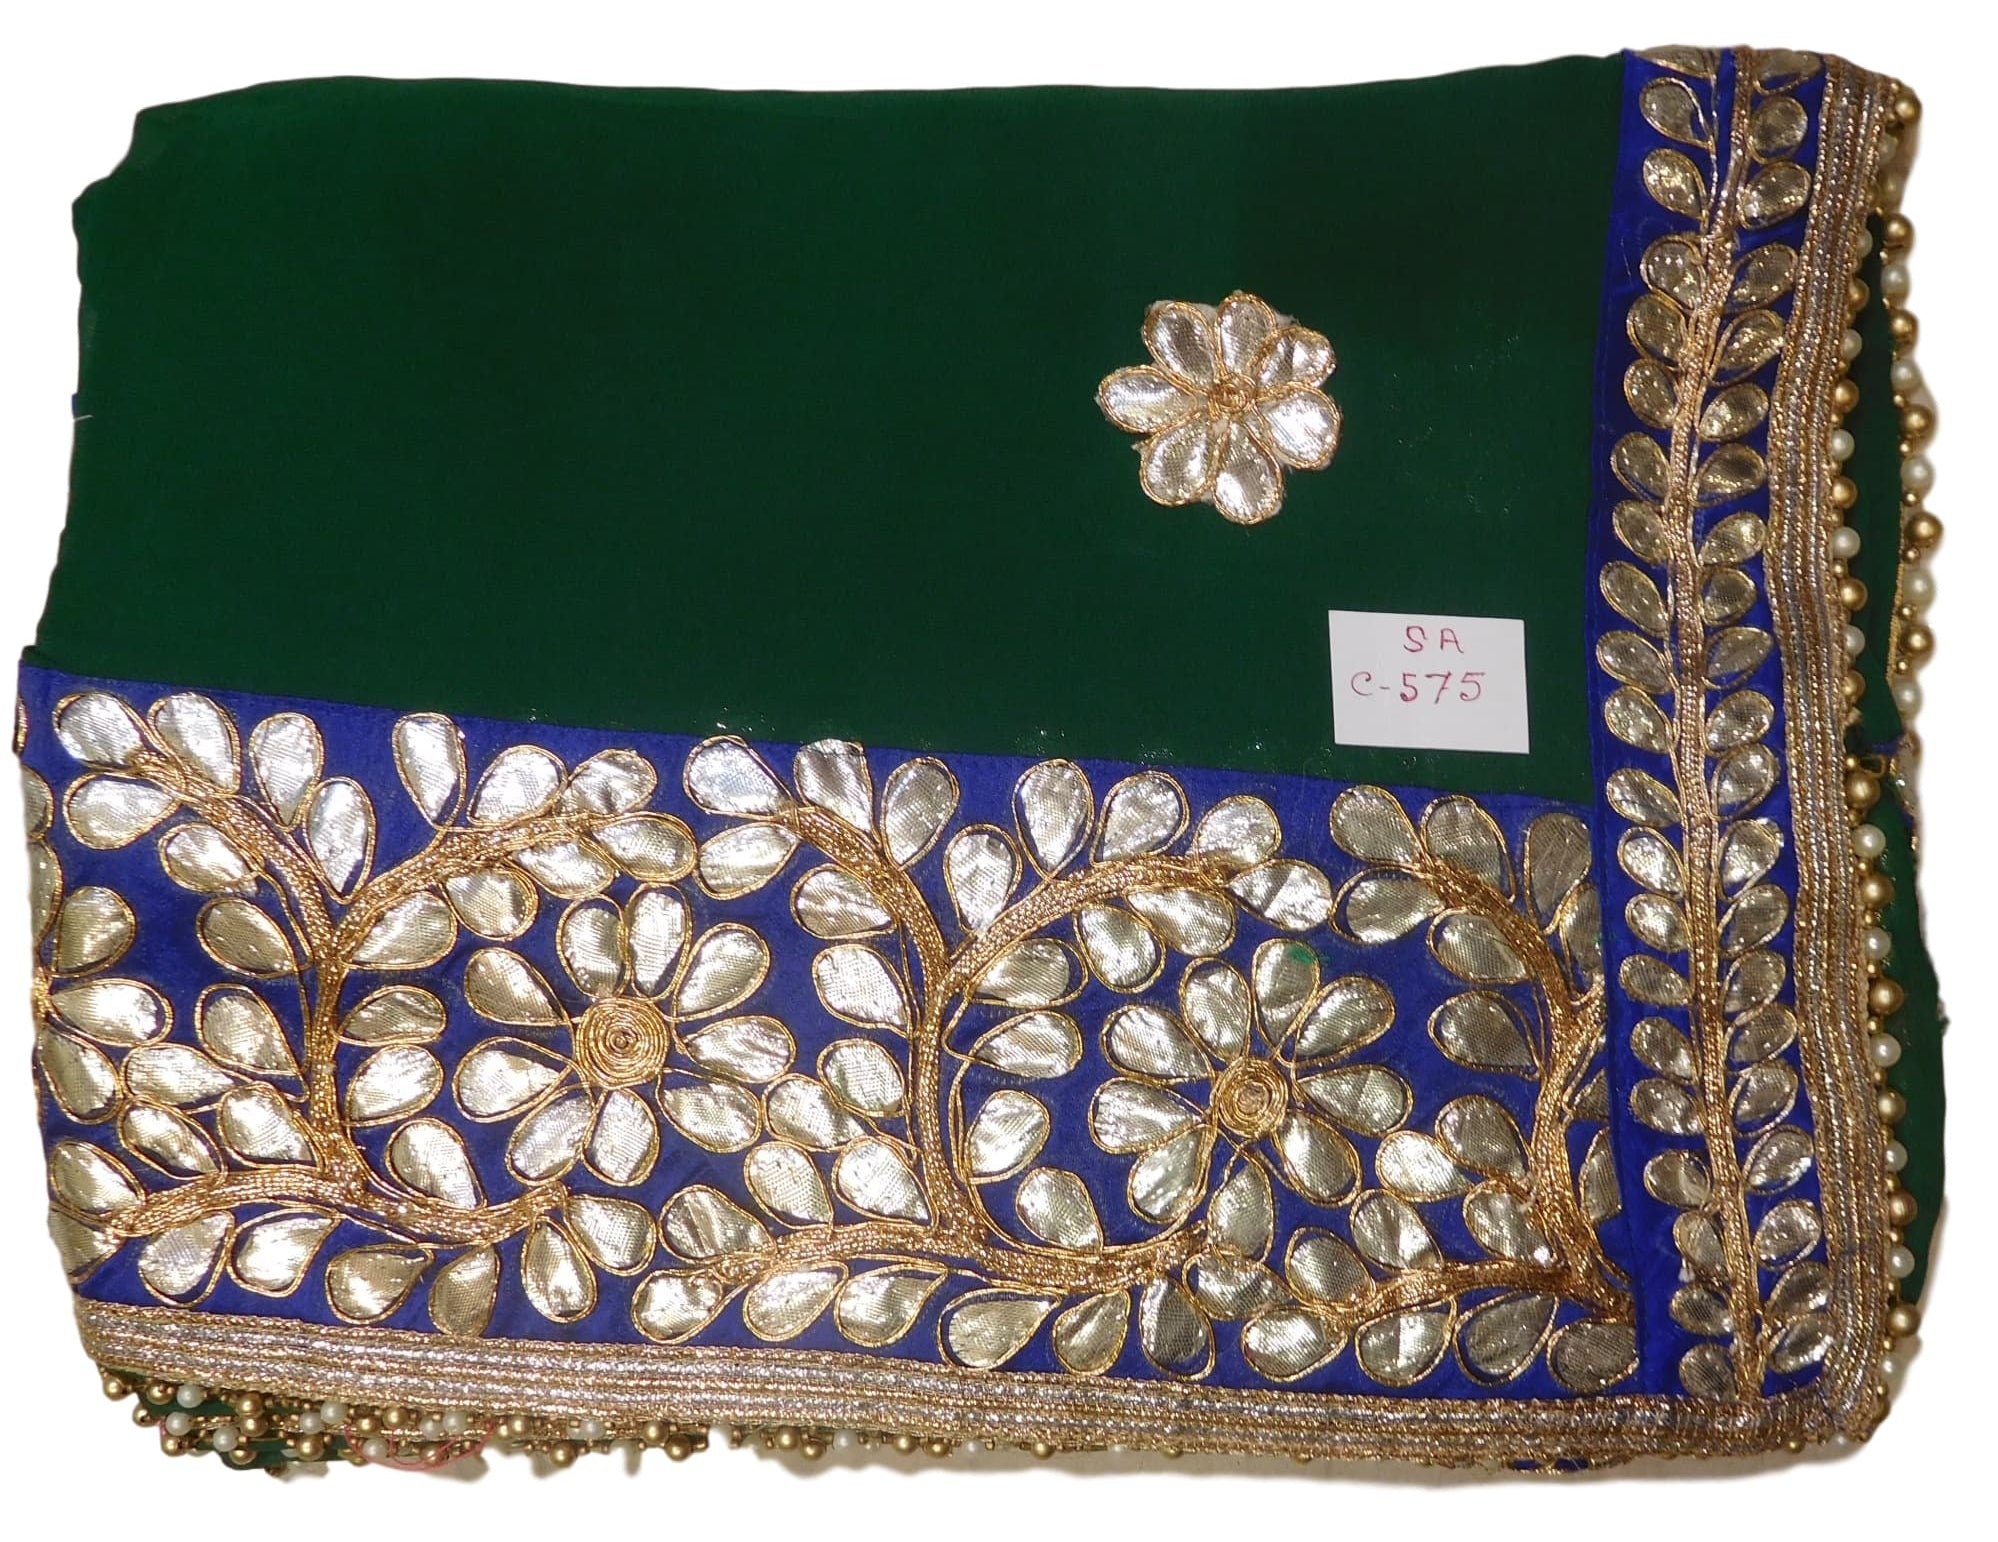 Bollywood Style Green Georgette (Viscos) Gota Work Saree With Blue Border & Pearl Lace Sari